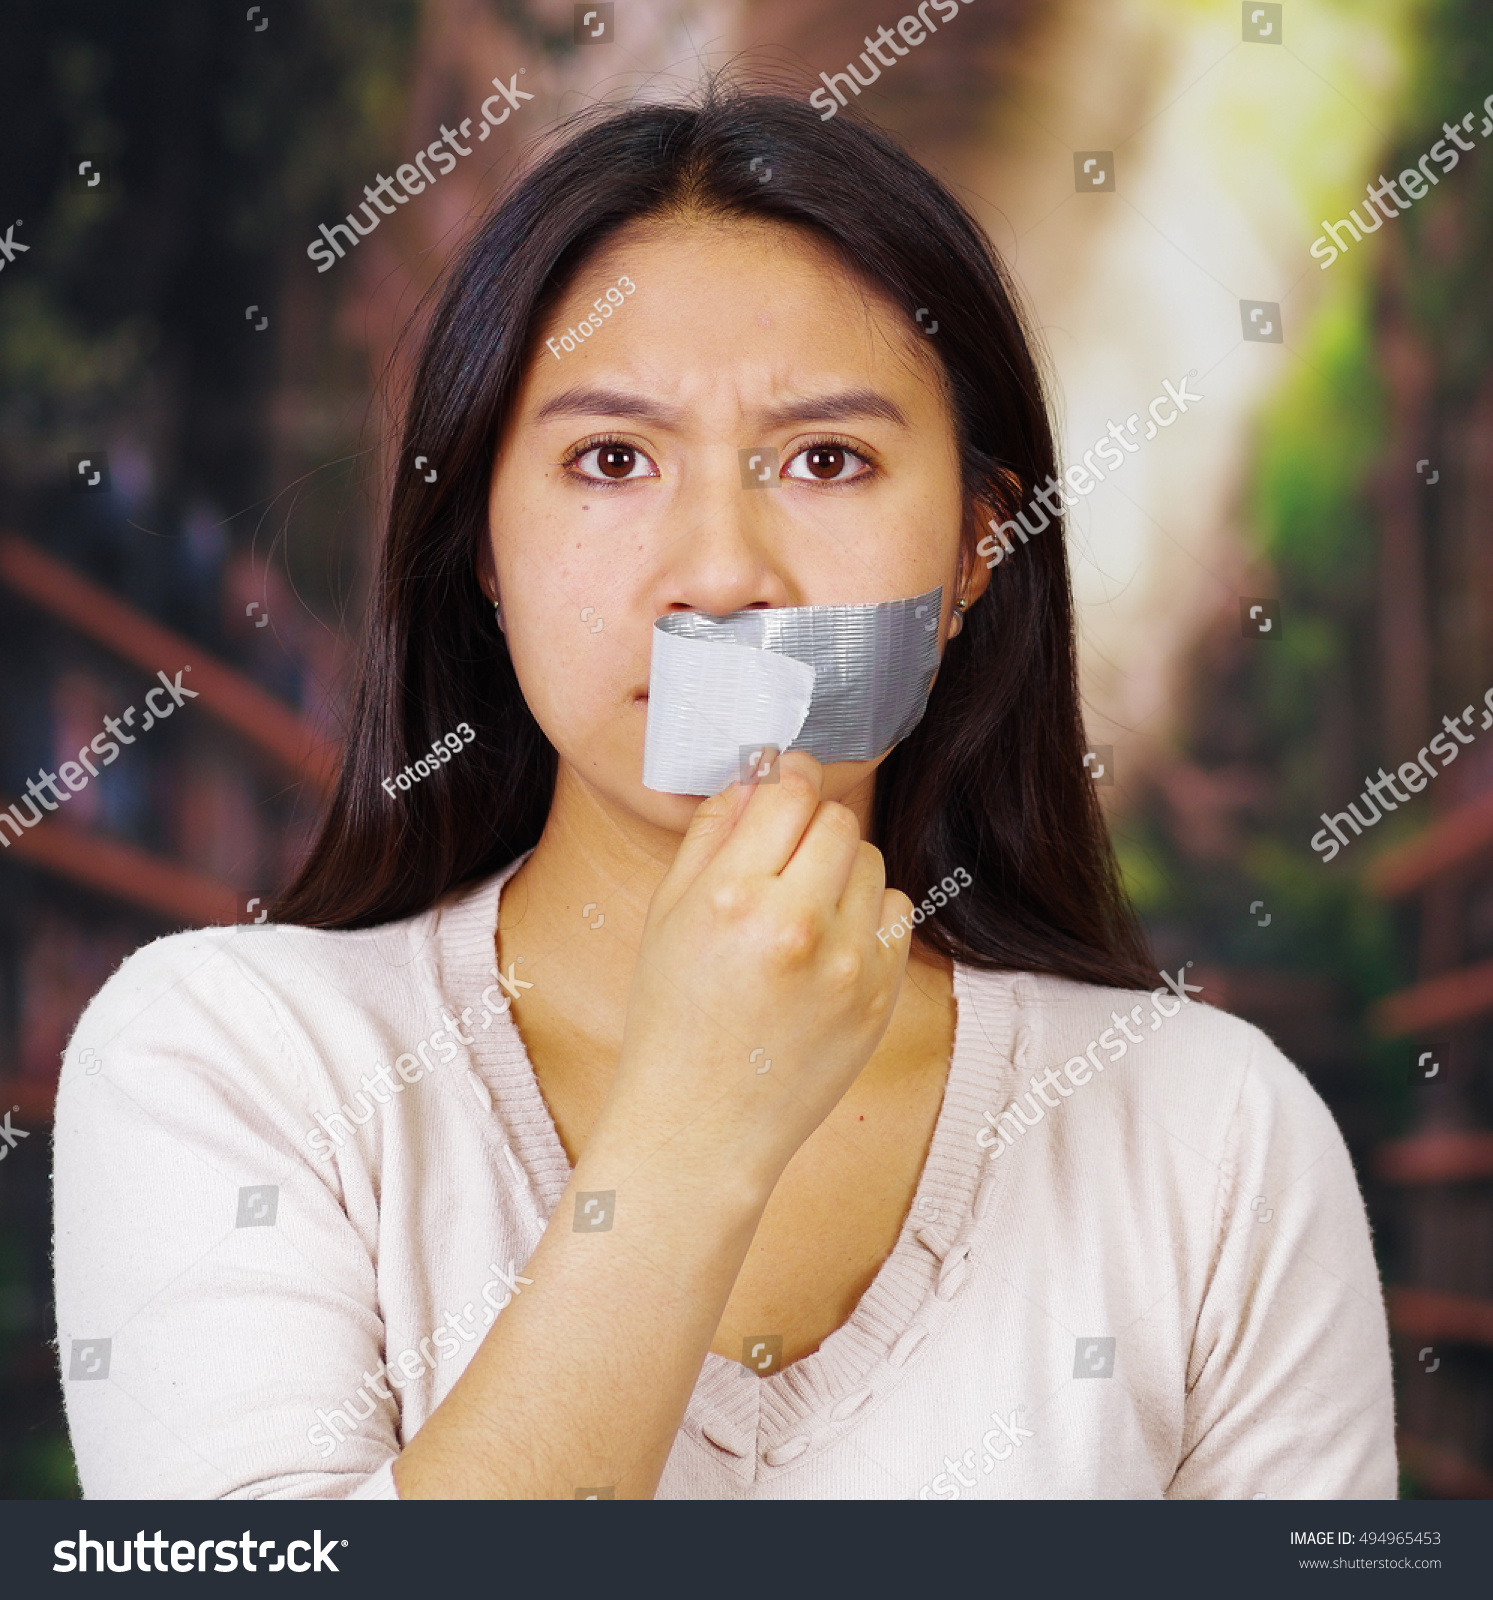 Young Brunette Woman Wearing White Taking Stock Photo